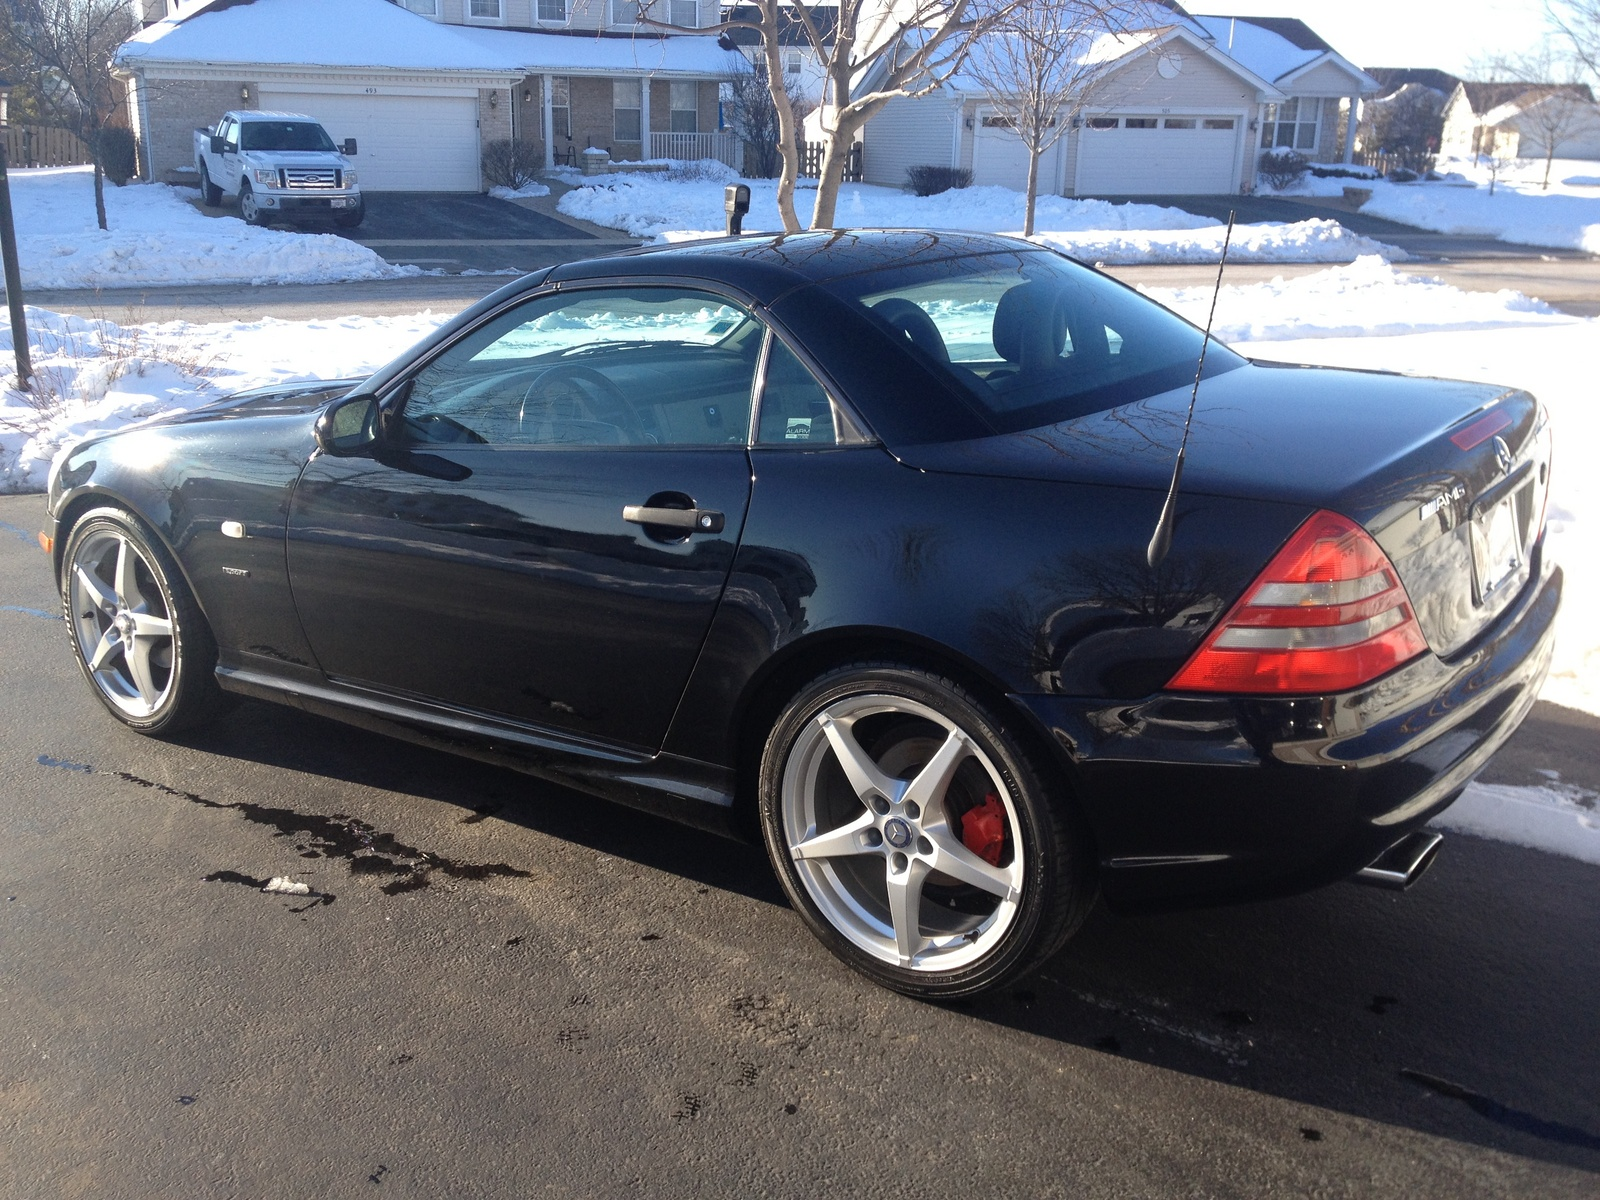 1999 mercedes benz slk class pictures cargurus for Mercedes benz slk230